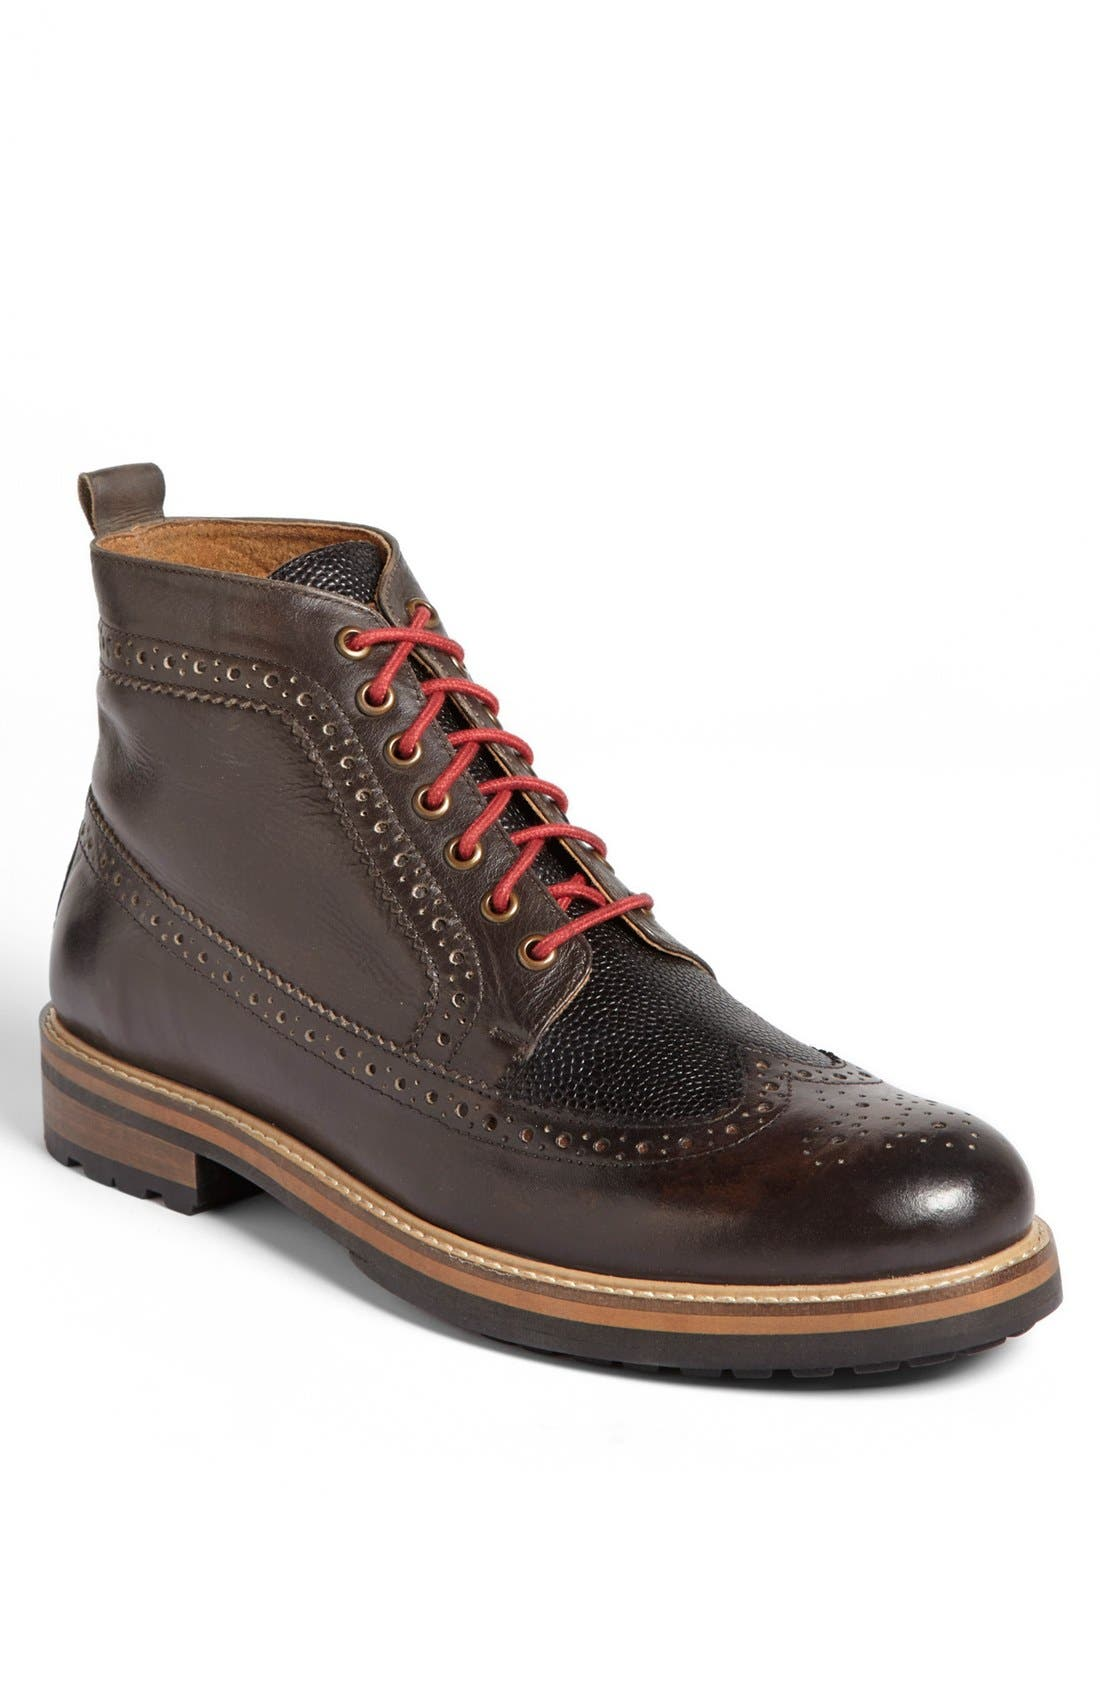 Alternate Image 1 Selected - Ben Sherman 'Cranston' Boot (Men)